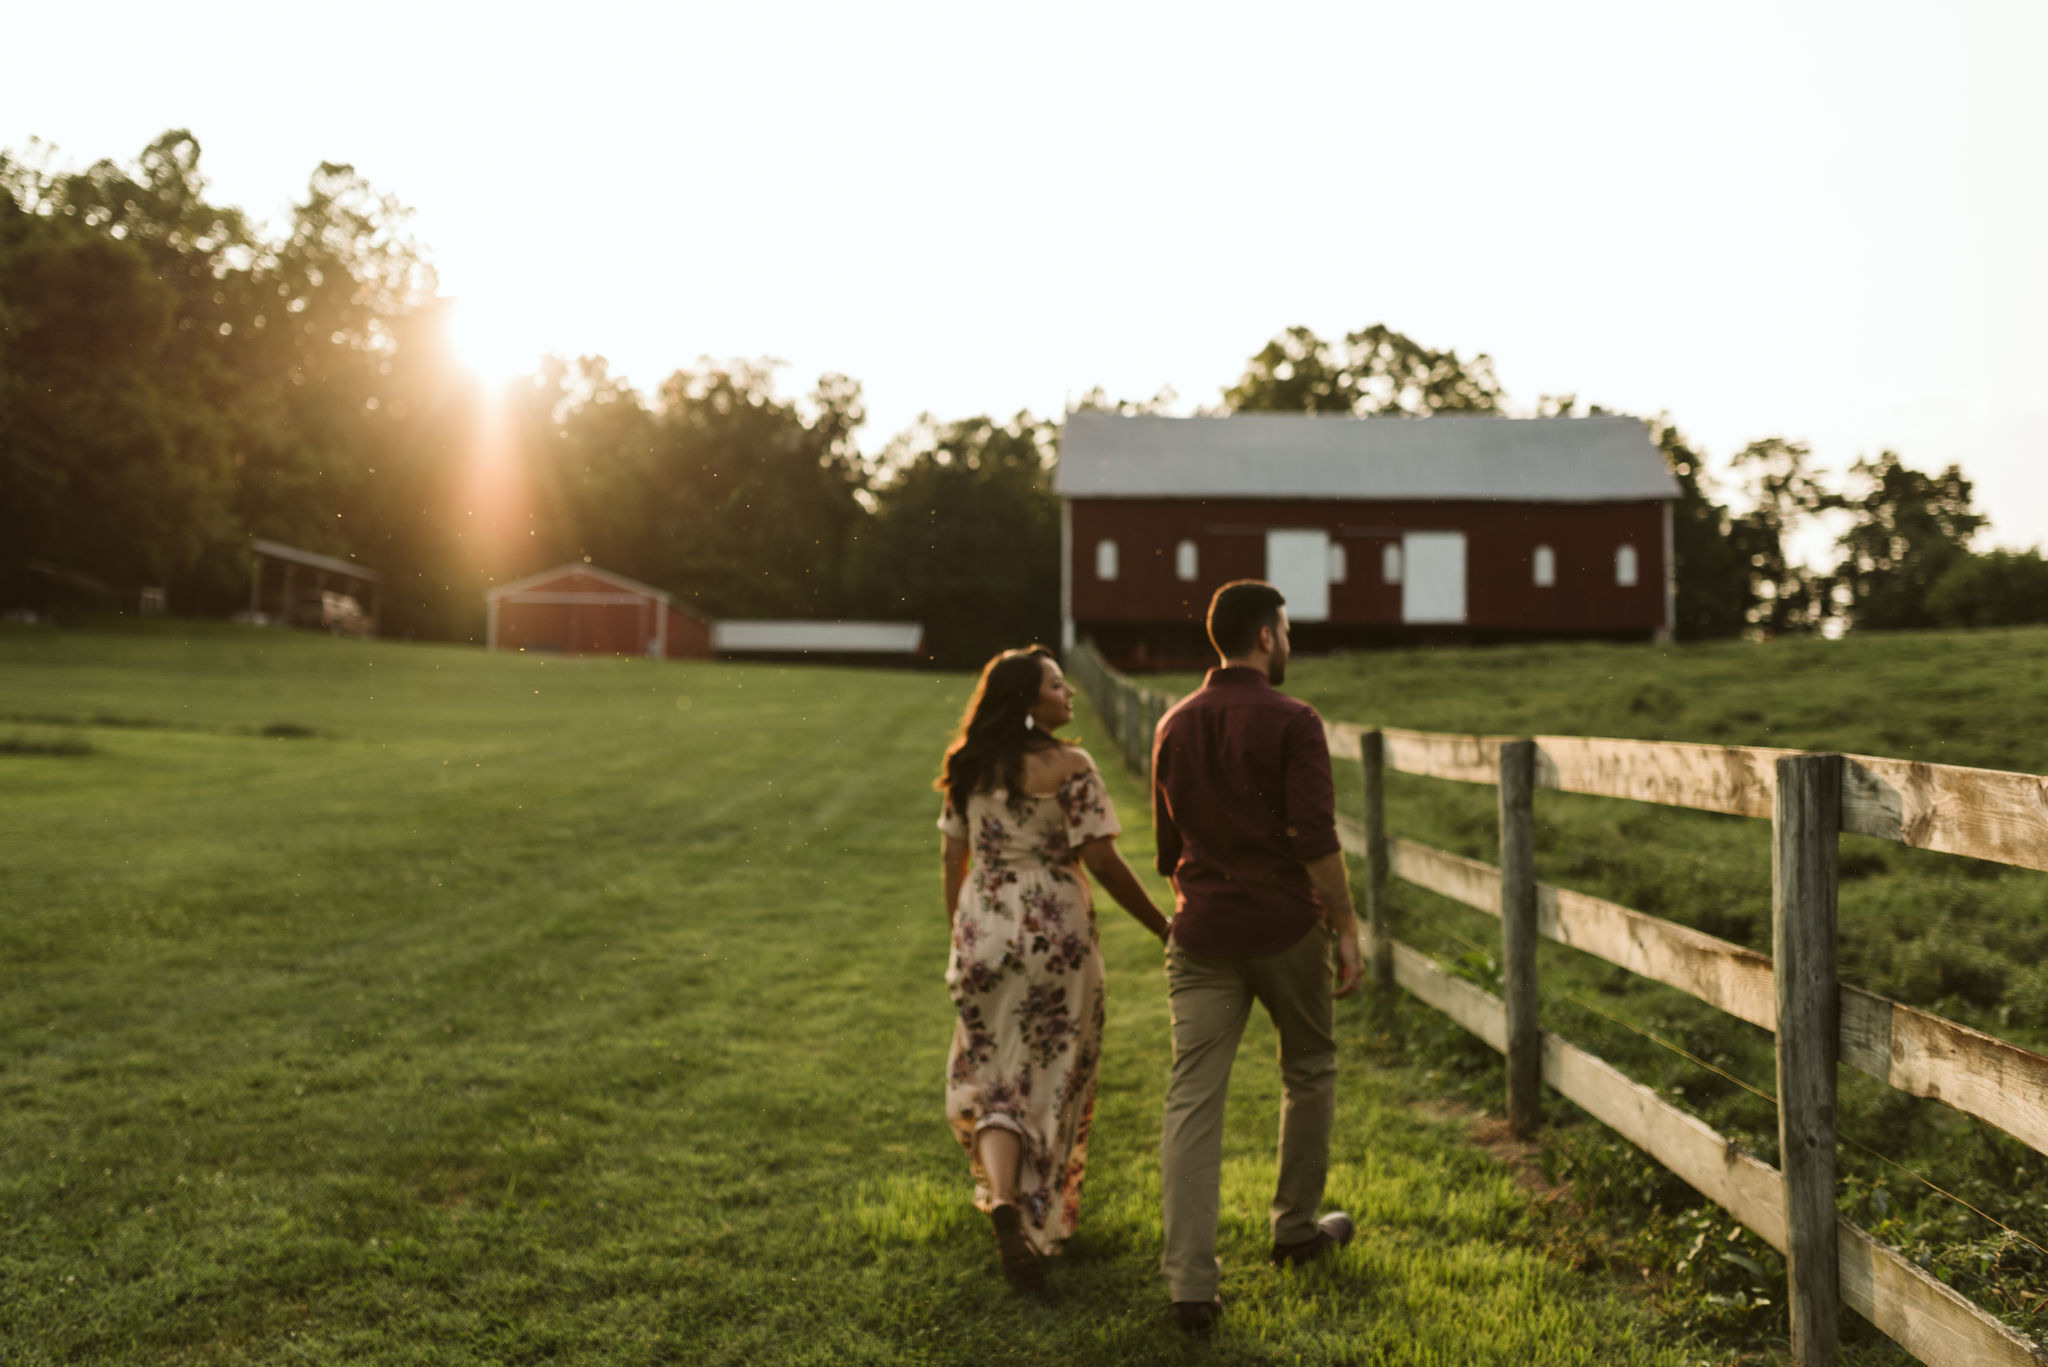 Frederick Maryland, Baltimore Wedding Photographer, Engagement, Bend in the River Farm, Outdoor, Rustic, Nature, Bride and Groom Walking Hand in Hand at Sunset, Farmhouse